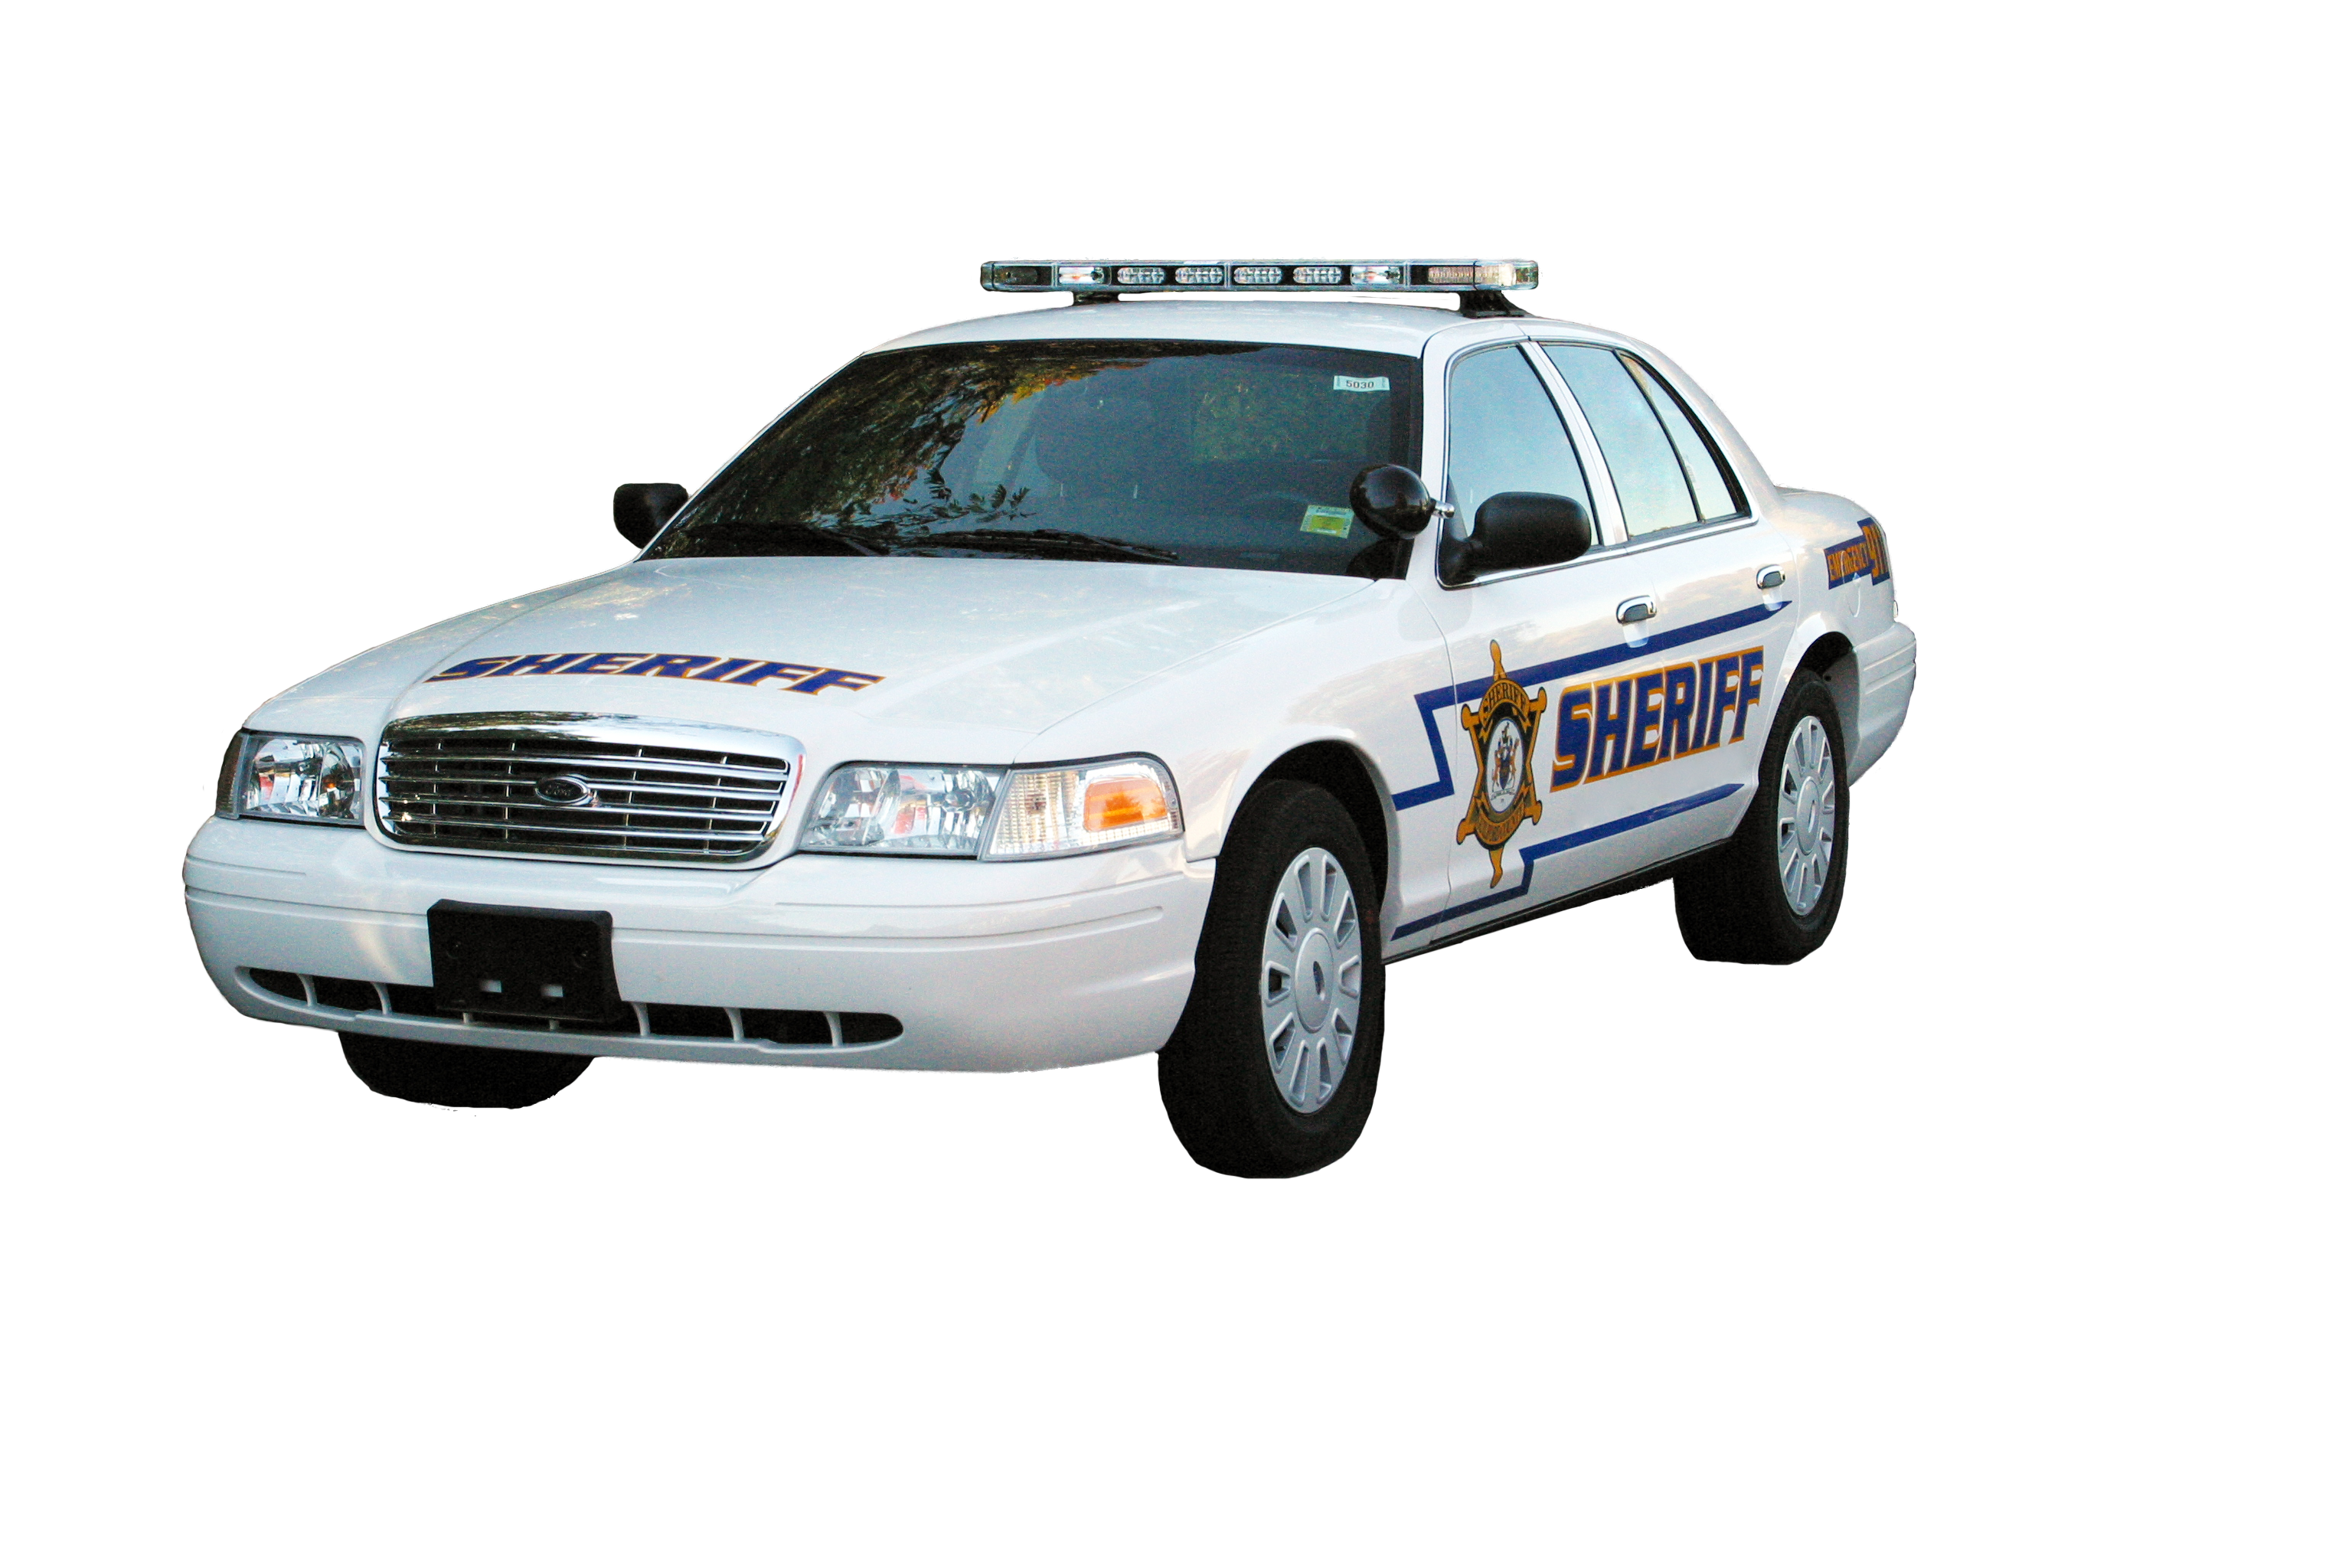 Police car clipart transparent background image transparent library Police vehicle png #28792 - Free Icons and PNG Backgrounds image transparent library